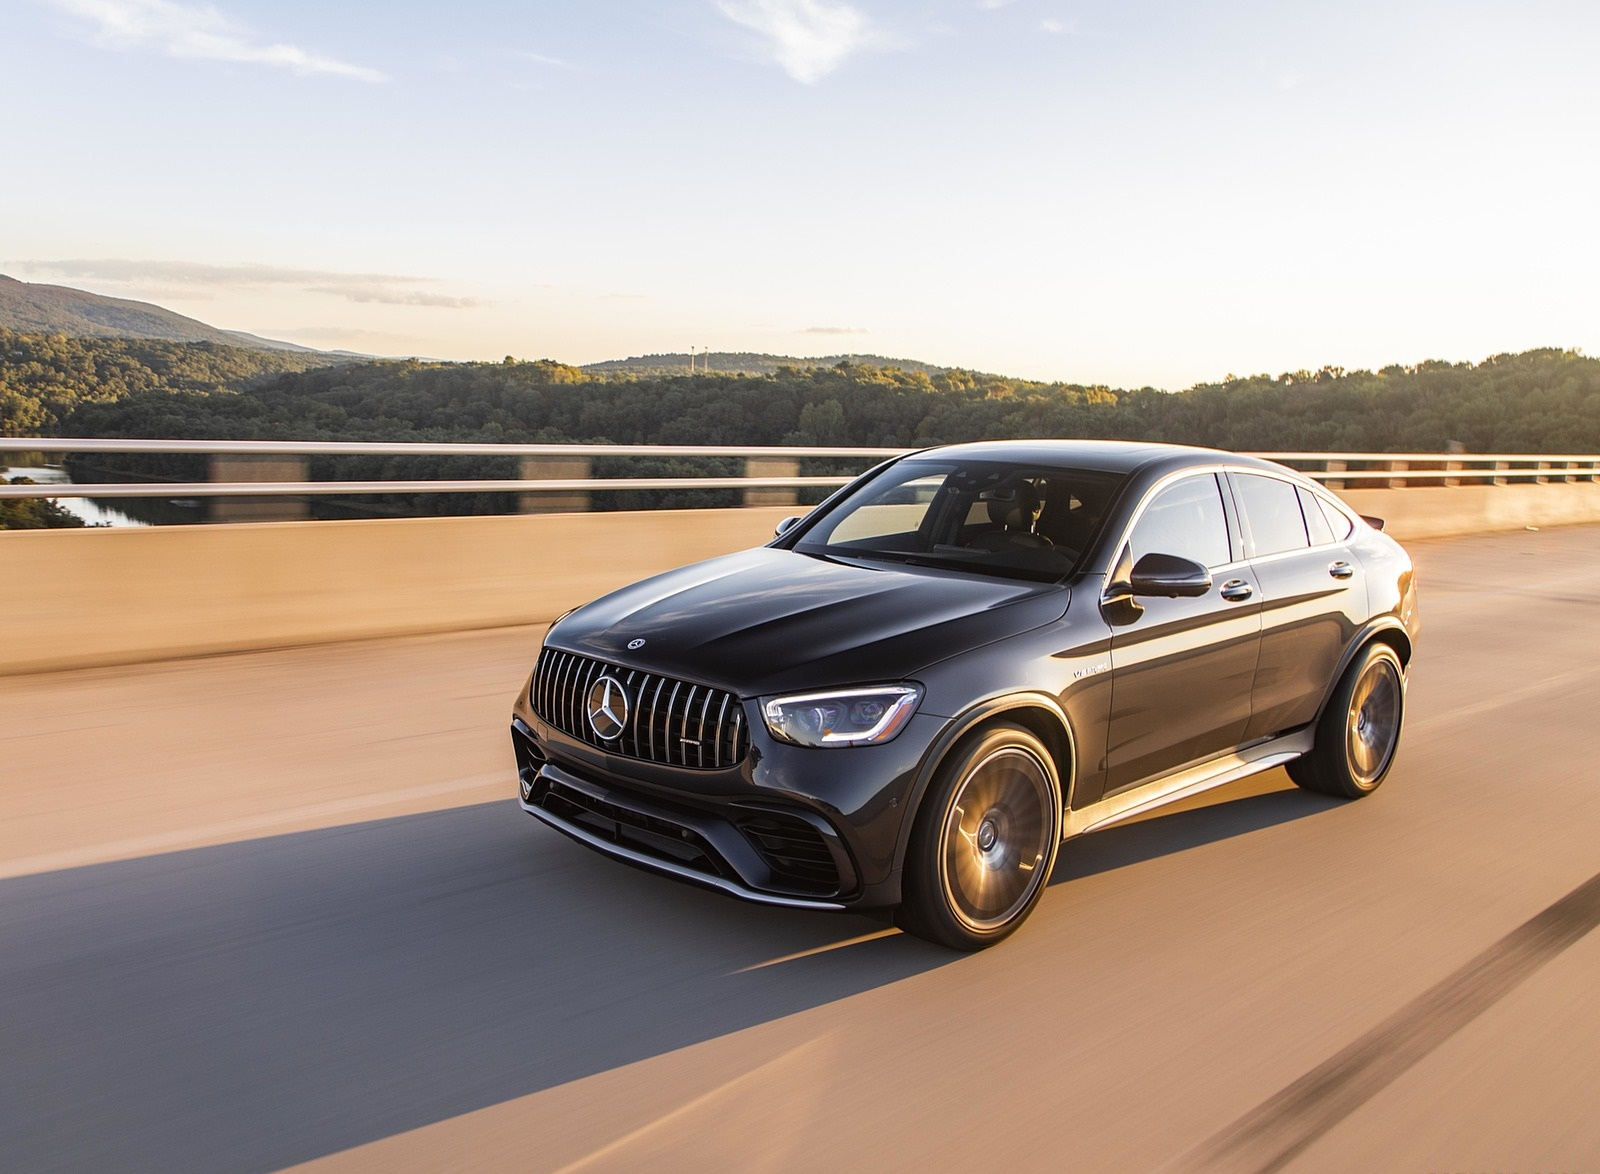 2020 Mercedes-AMG GLC 63 S Coupe (US-Spec) Front Three-Quarter Wallpapers (5)